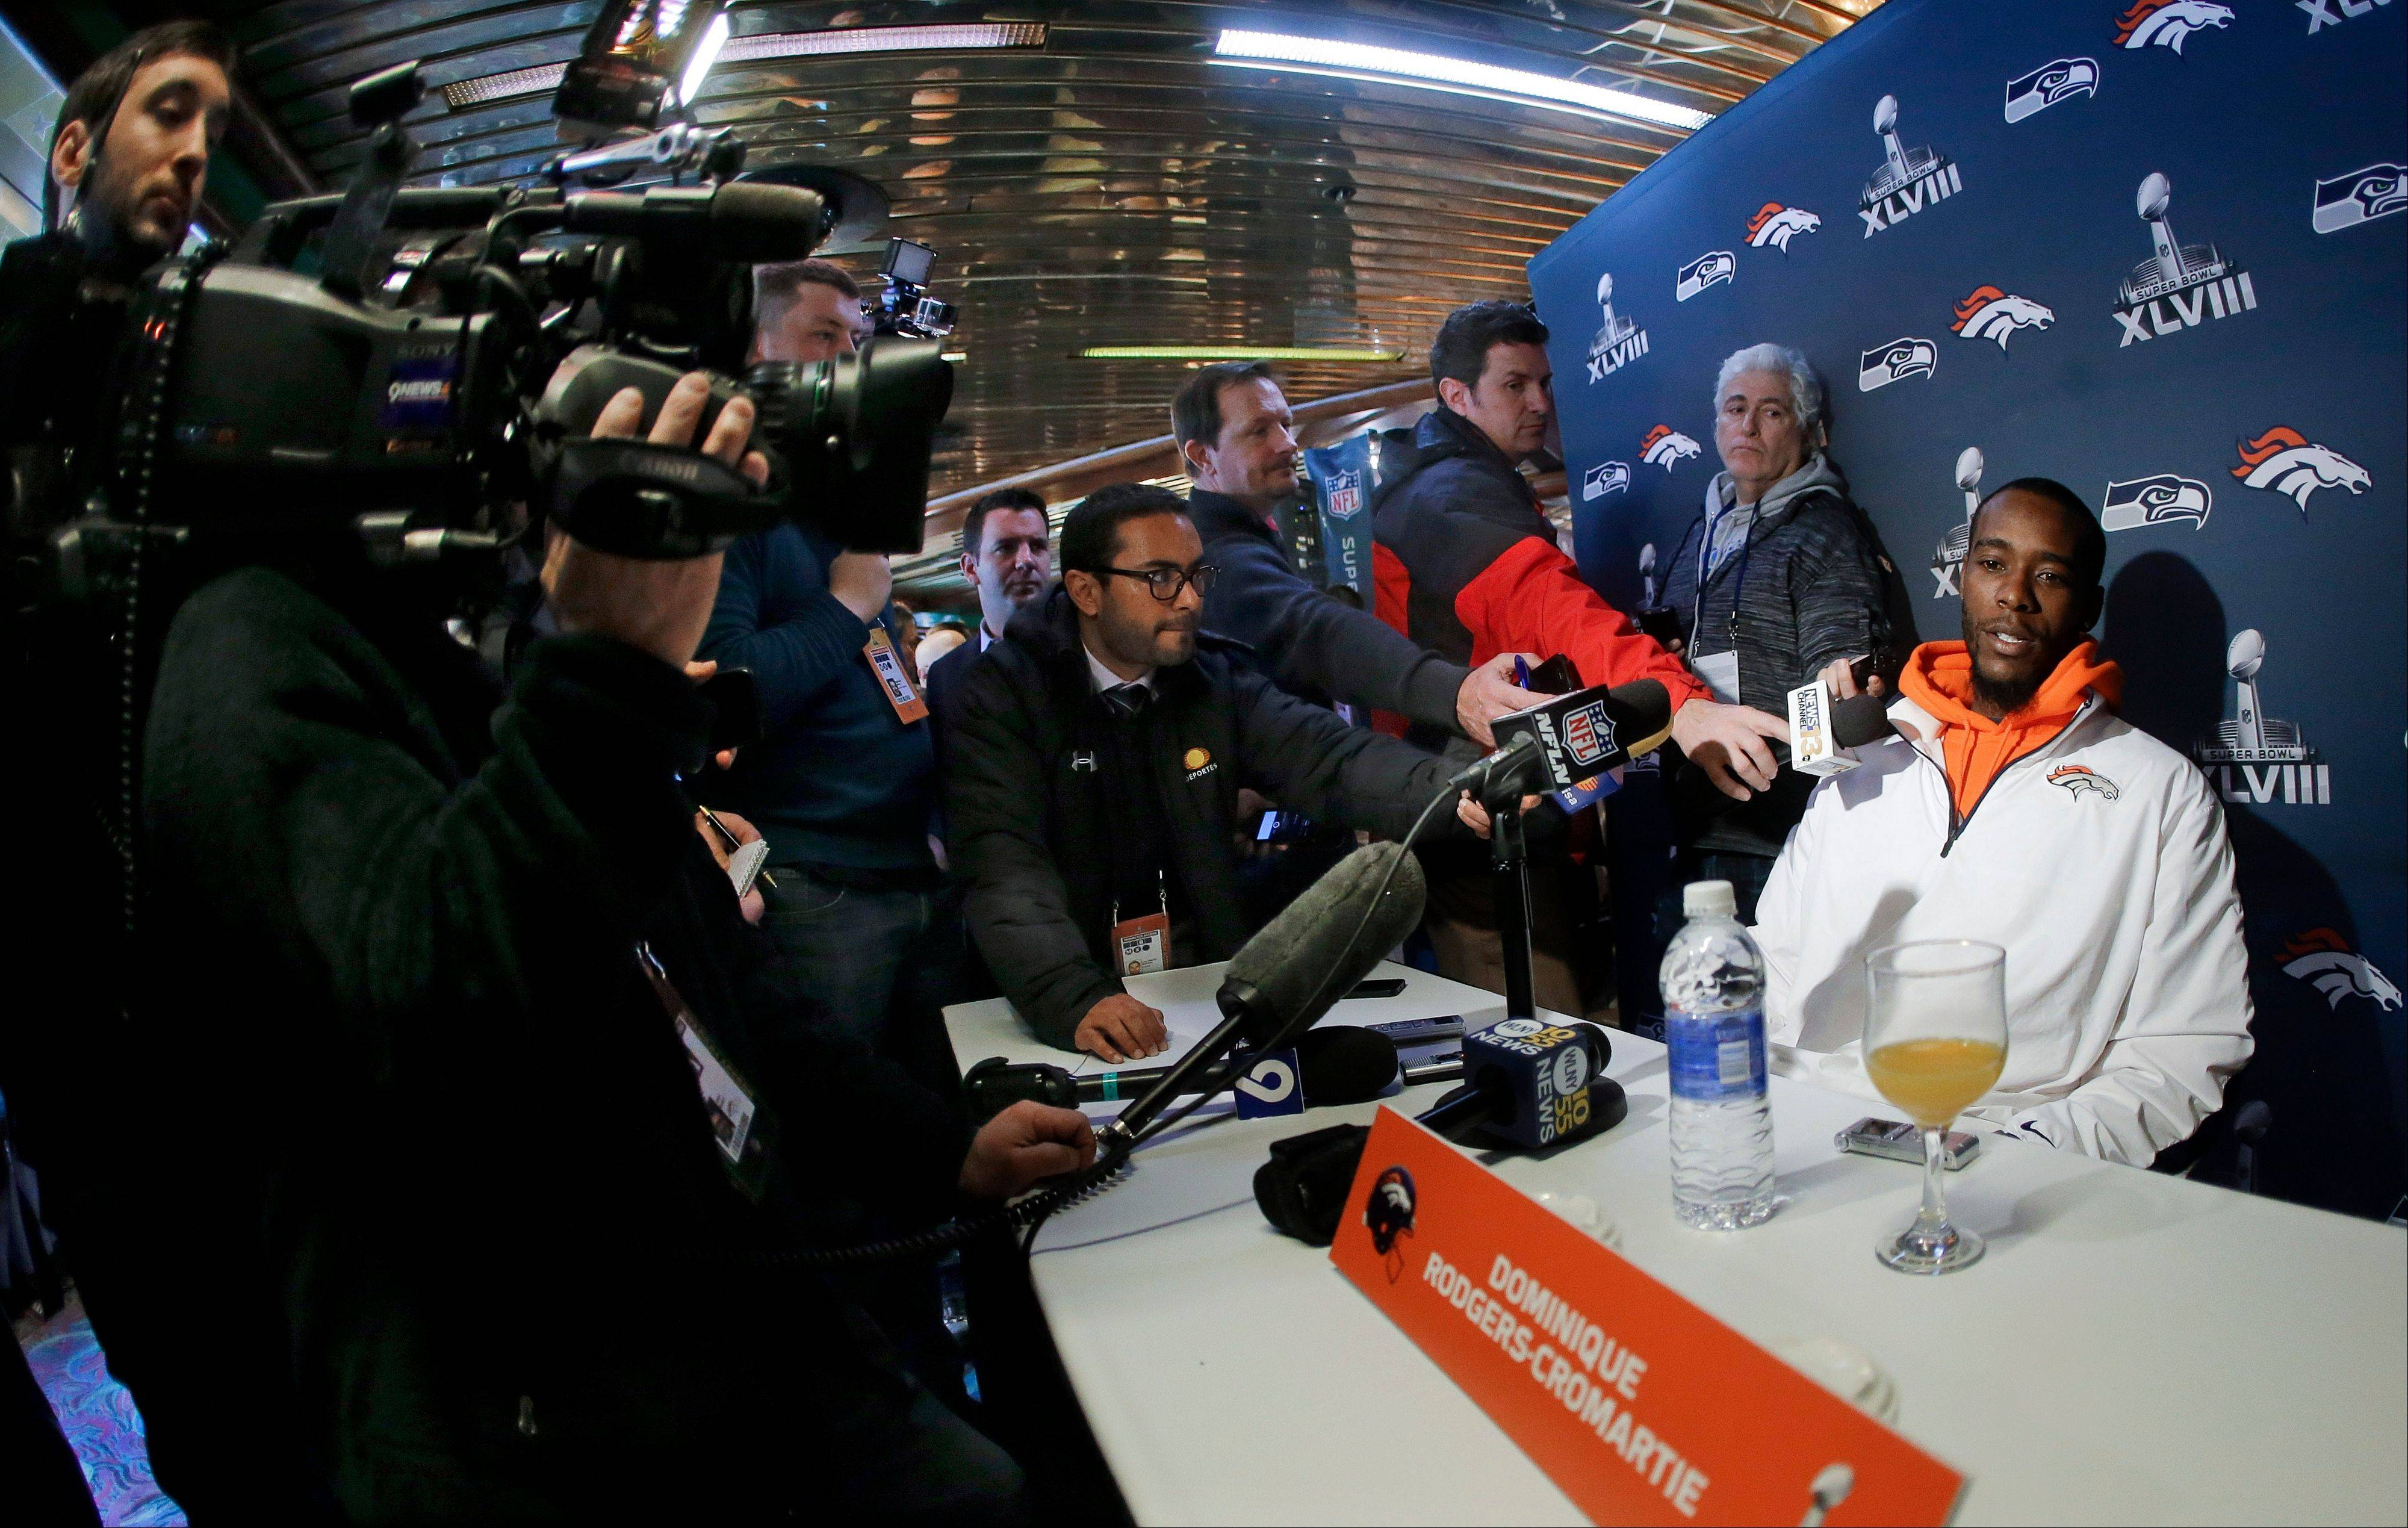 Denver Broncos cornerback Dominique Rodgers-Cromartie talks with reporters during a news conference Mondayin Jersey City, N.J. The Broncos are scheduled to play the Seattle Seahawks in the NFL Super Bowl XLVIII football game Sunday, Feb. 2, in East Rutherford, N.J.